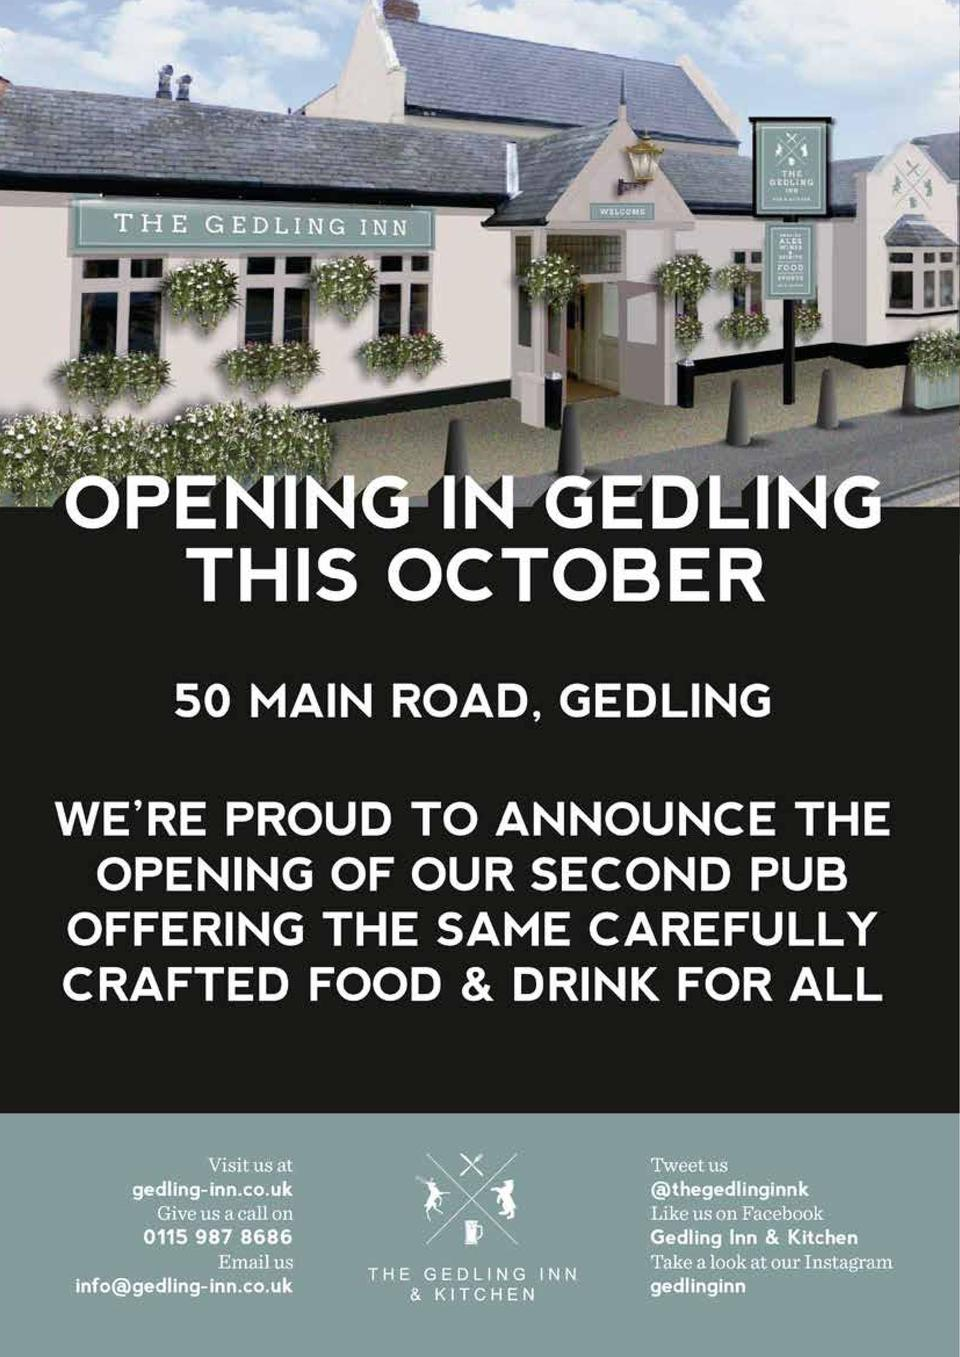 Gedling   s New Gem  T  he new Gedling Inn is a far cry from the dated flaming grill it was just a matter of weeks ago, wi...